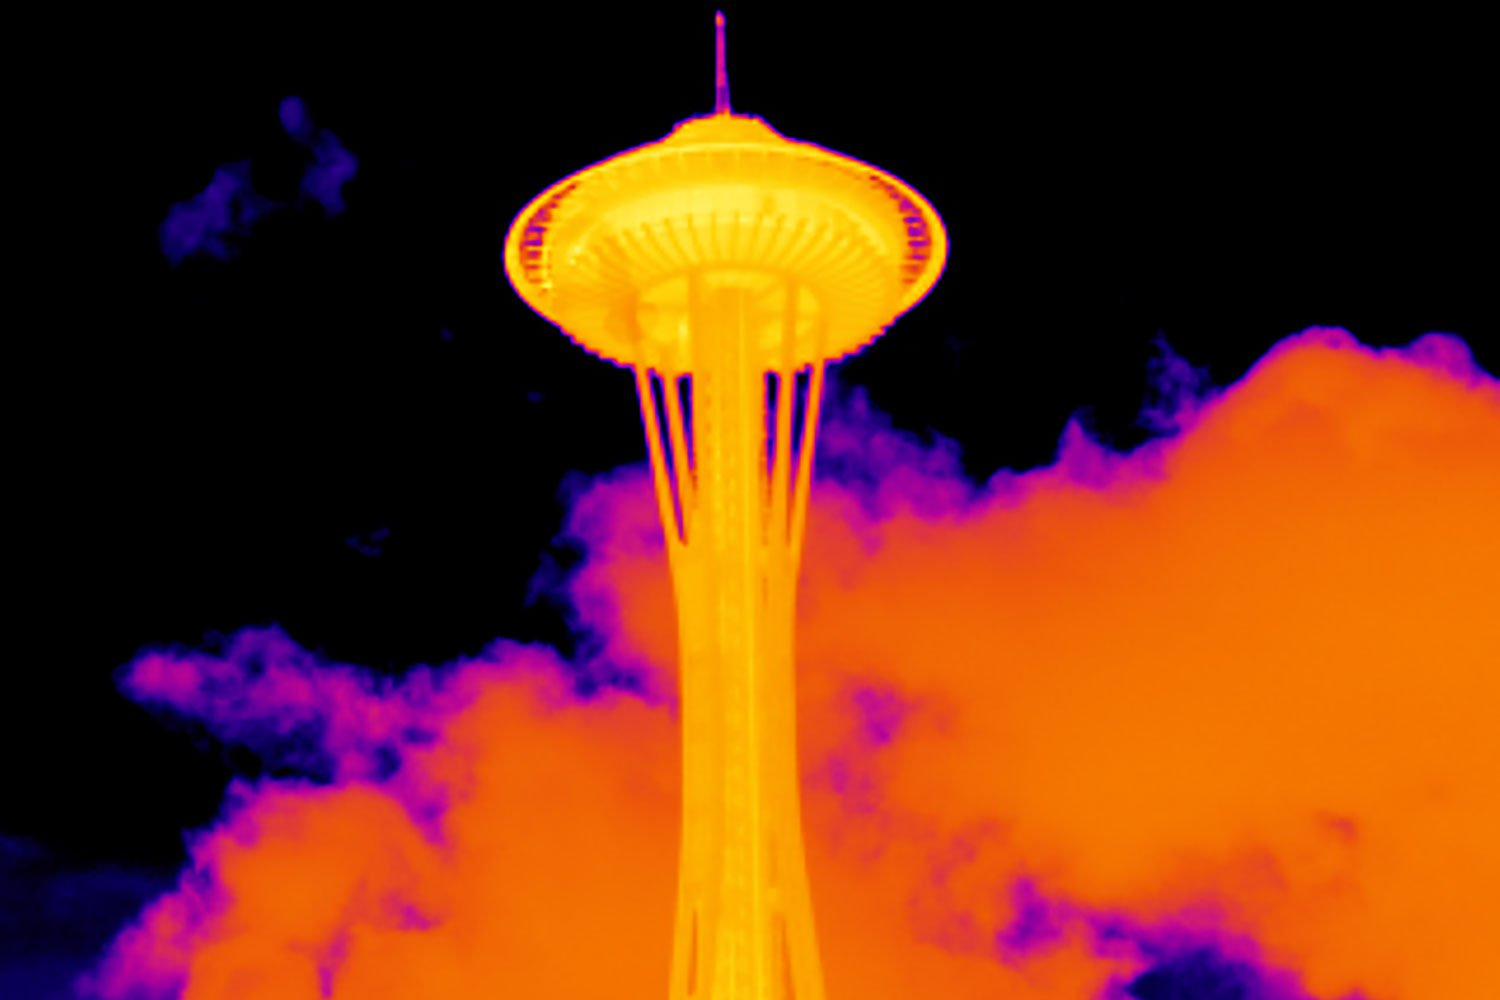 Seattle Space Needle with standard lens on a TiX560